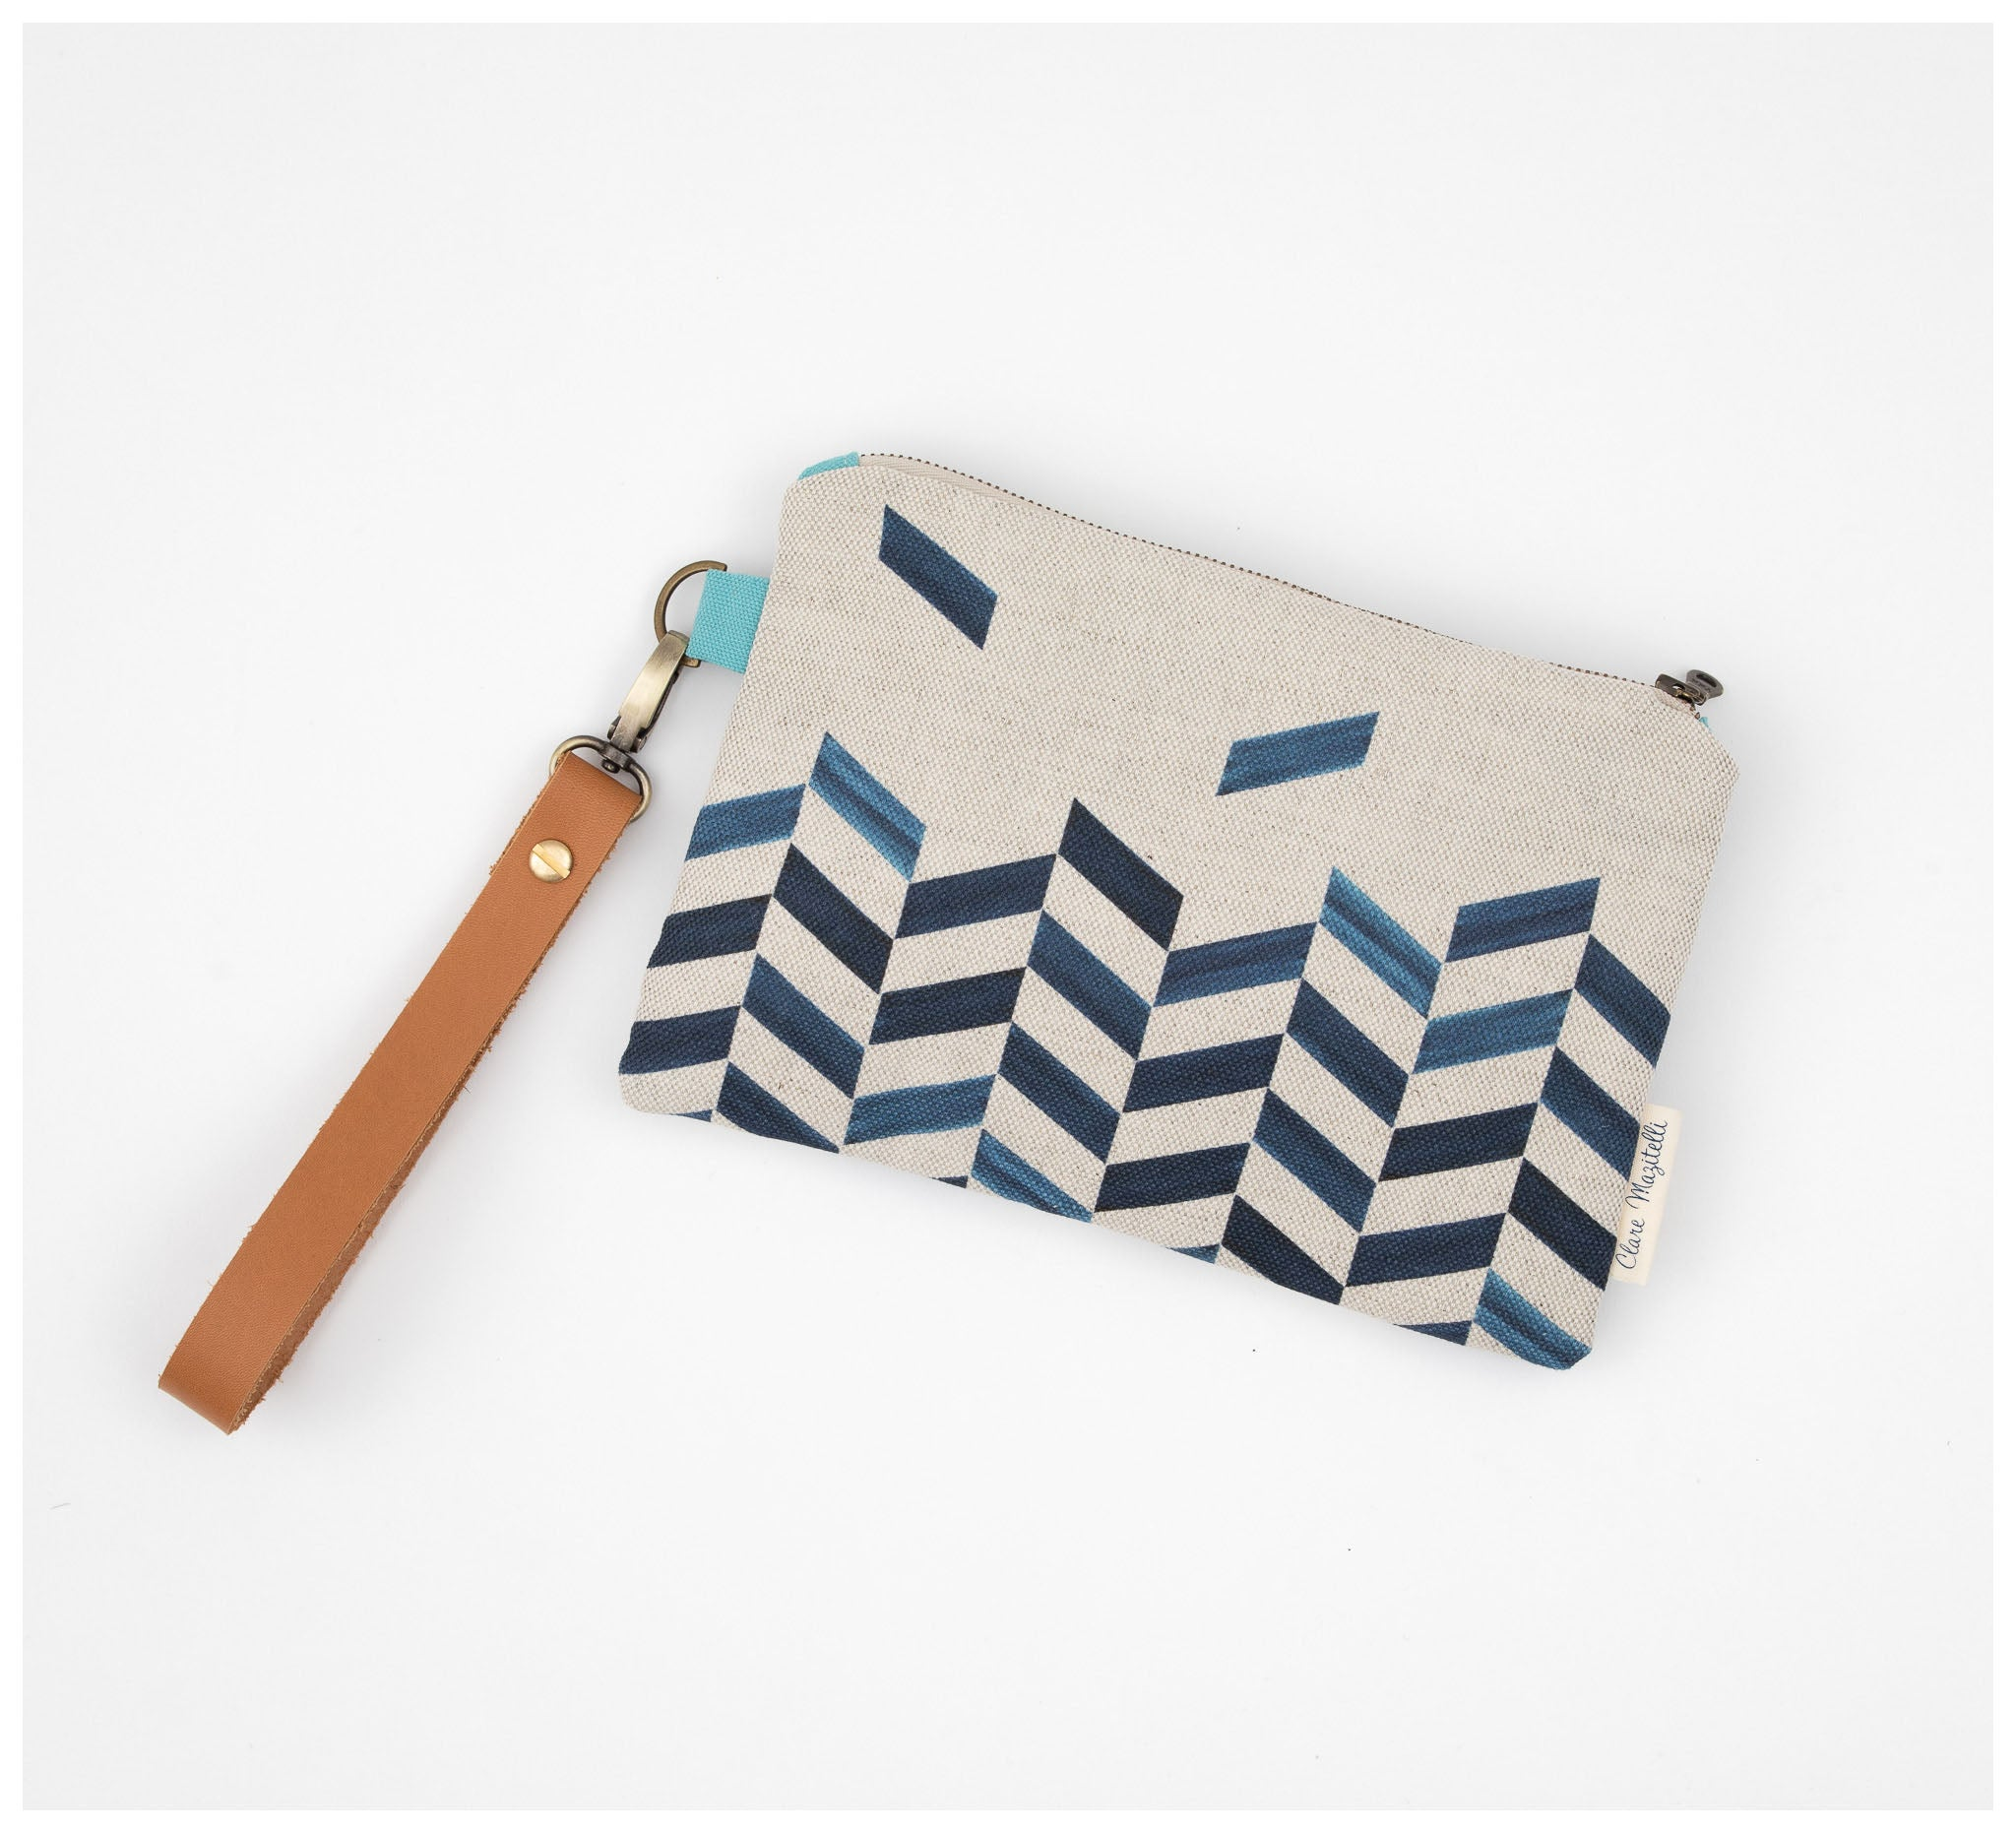 Clare Mazitelli Designs - Clutch Bags - Chevron Print